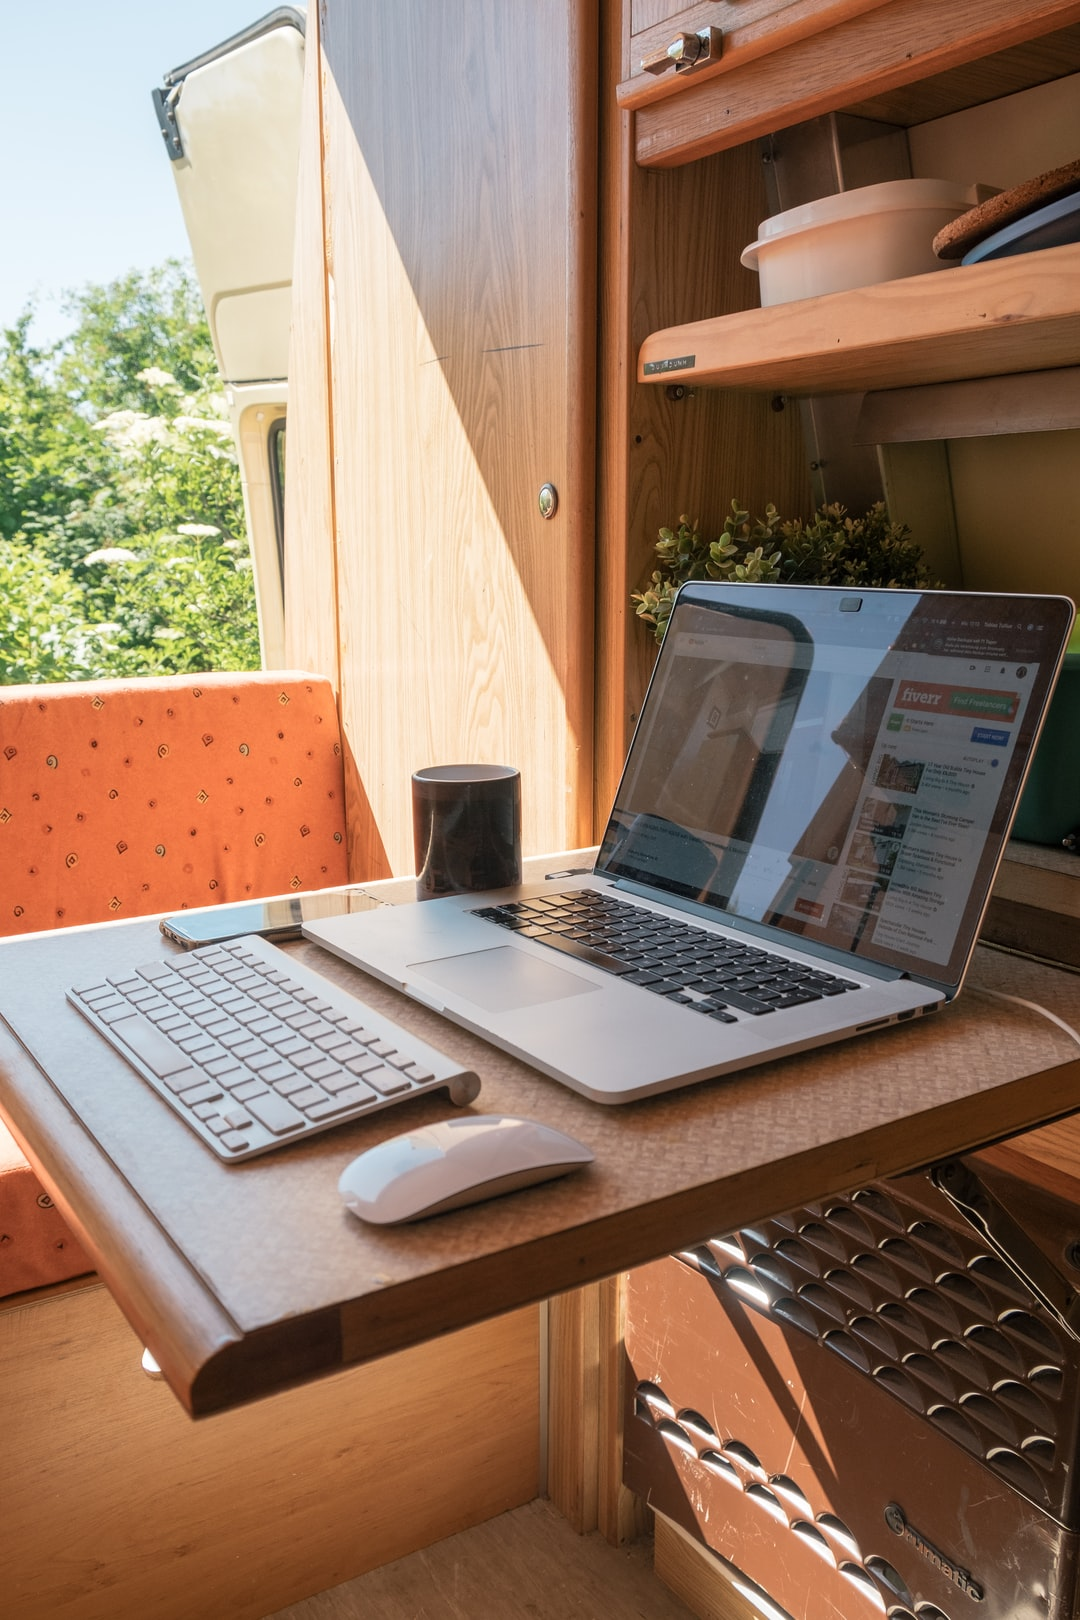 A home office in a van